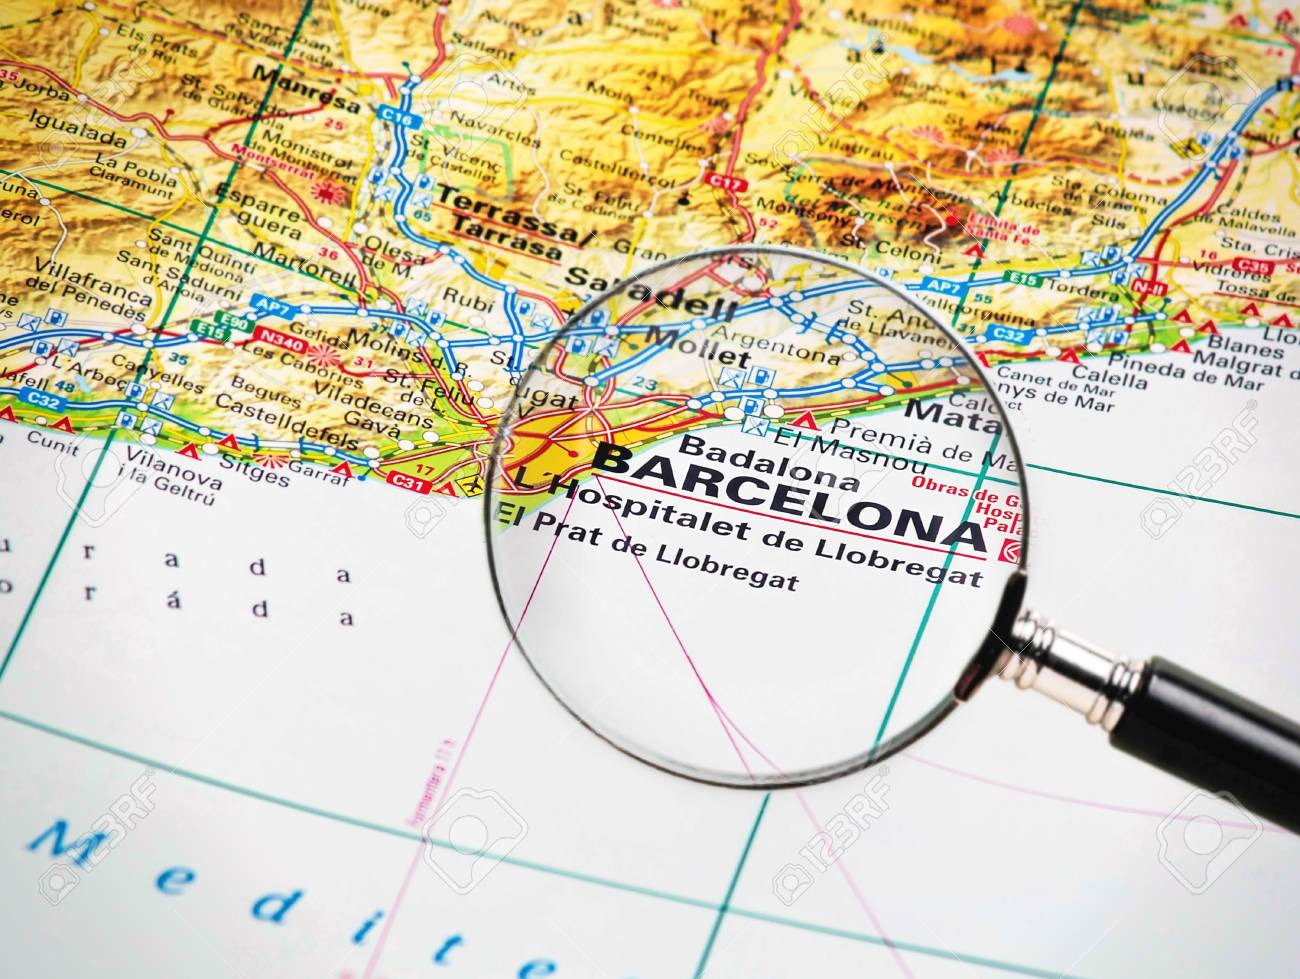 Focus on barcelone on the map source the big world atlas stock photo focus on barcelone on the map source the big world atlas stock photo 27752024 gumiabroncs Image collections